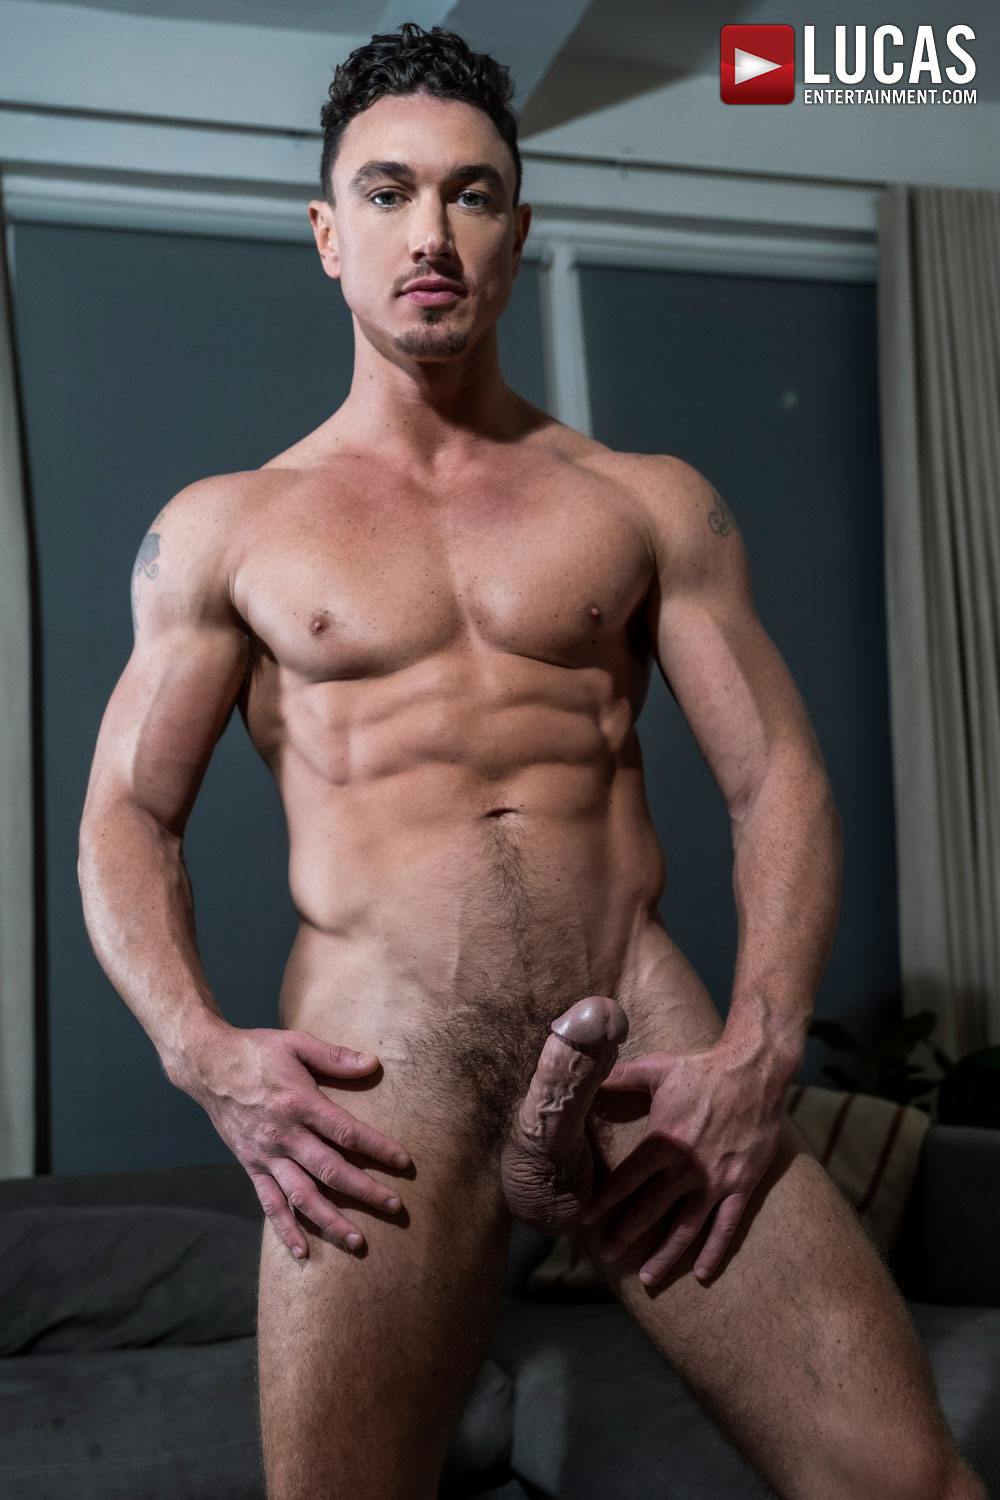 gay escort monterrey videos porno gay en castellano